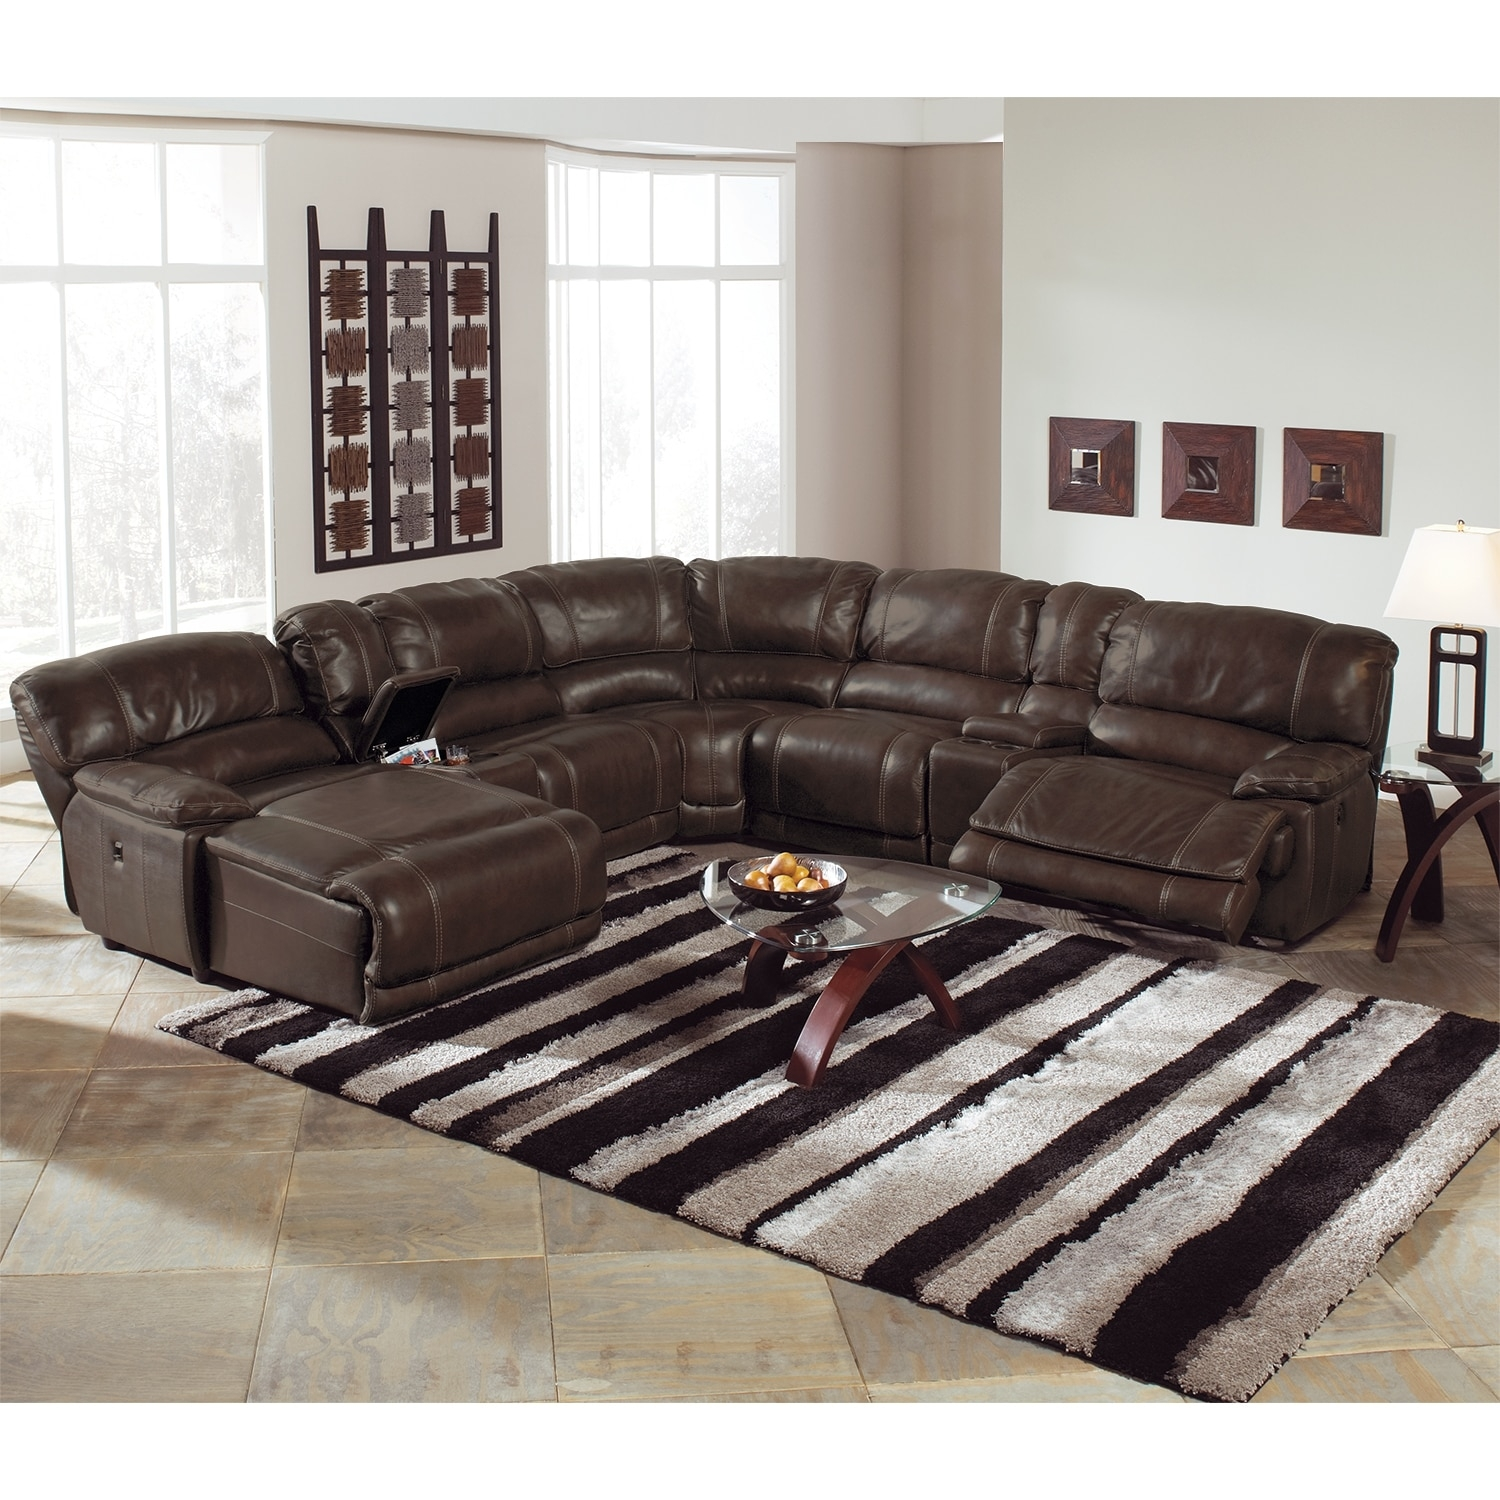 Power Reclining Leather Sectional Sofas Centerfieldbar Com & Best Power Reclining Sectional Sofas | Centerfieldbar.com islam-shia.org